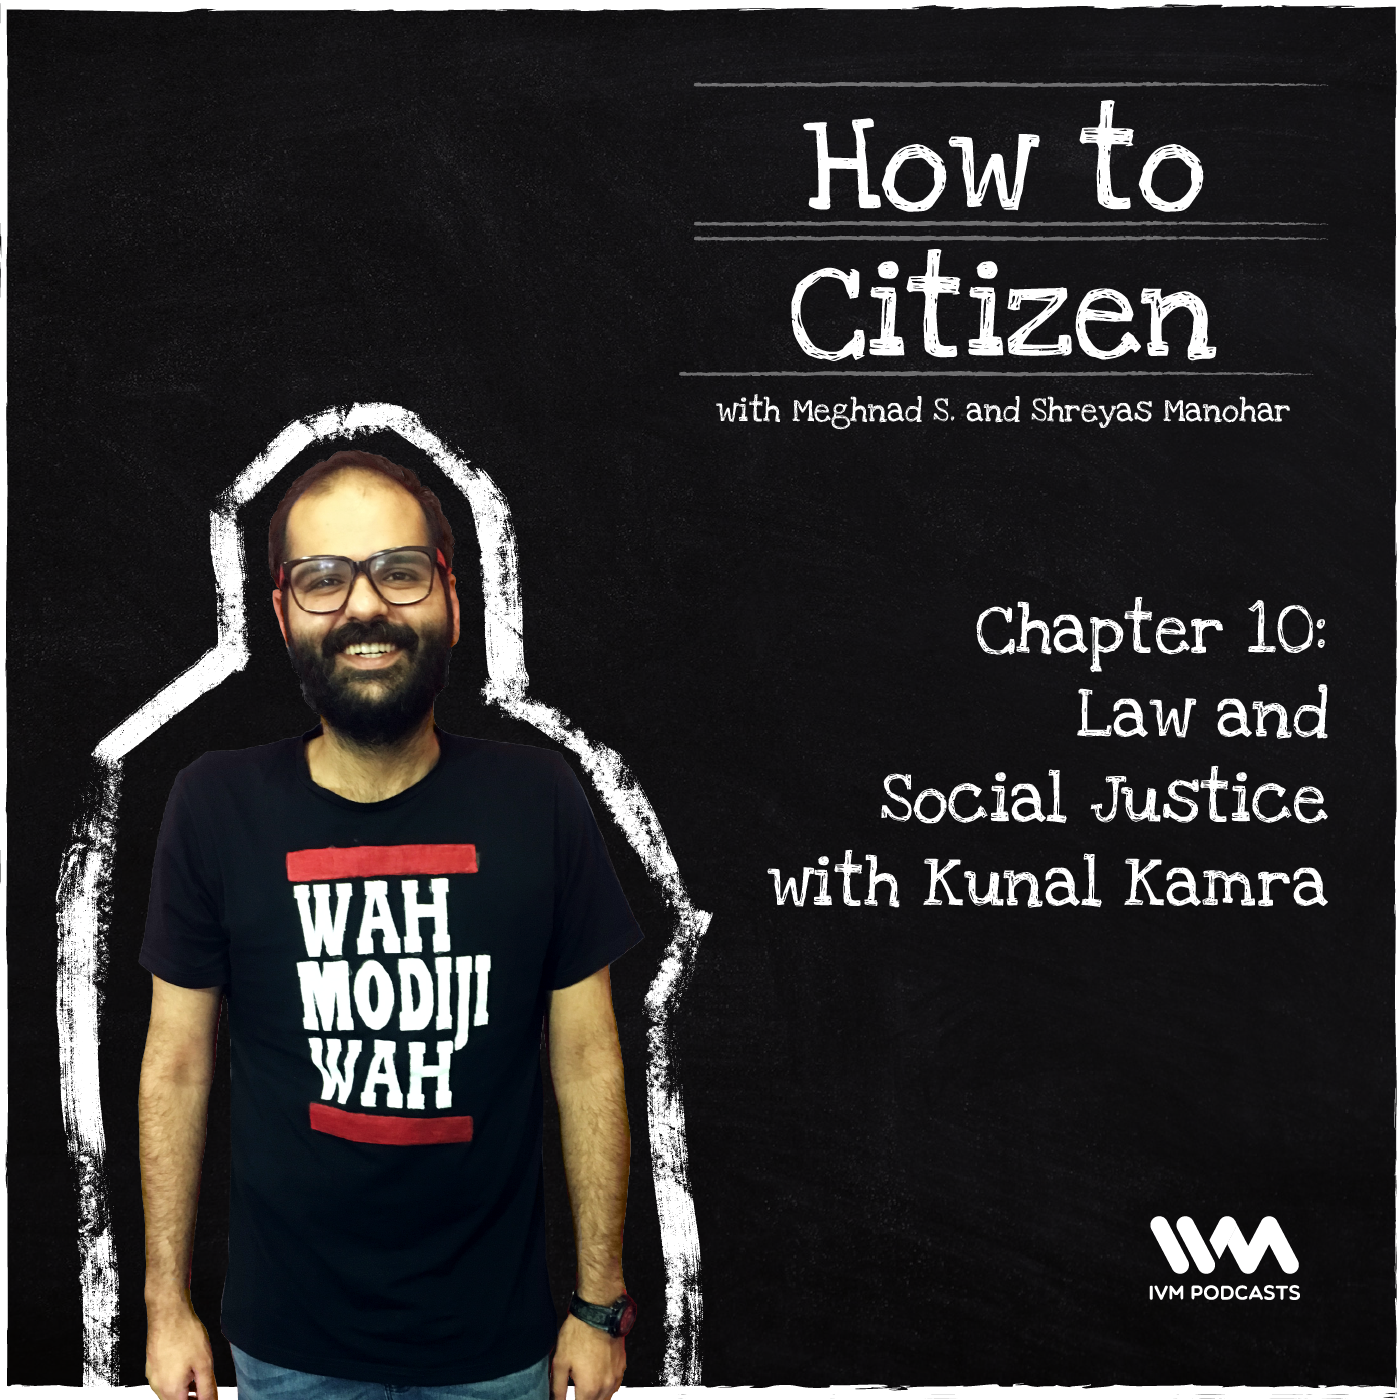 How to Citizen